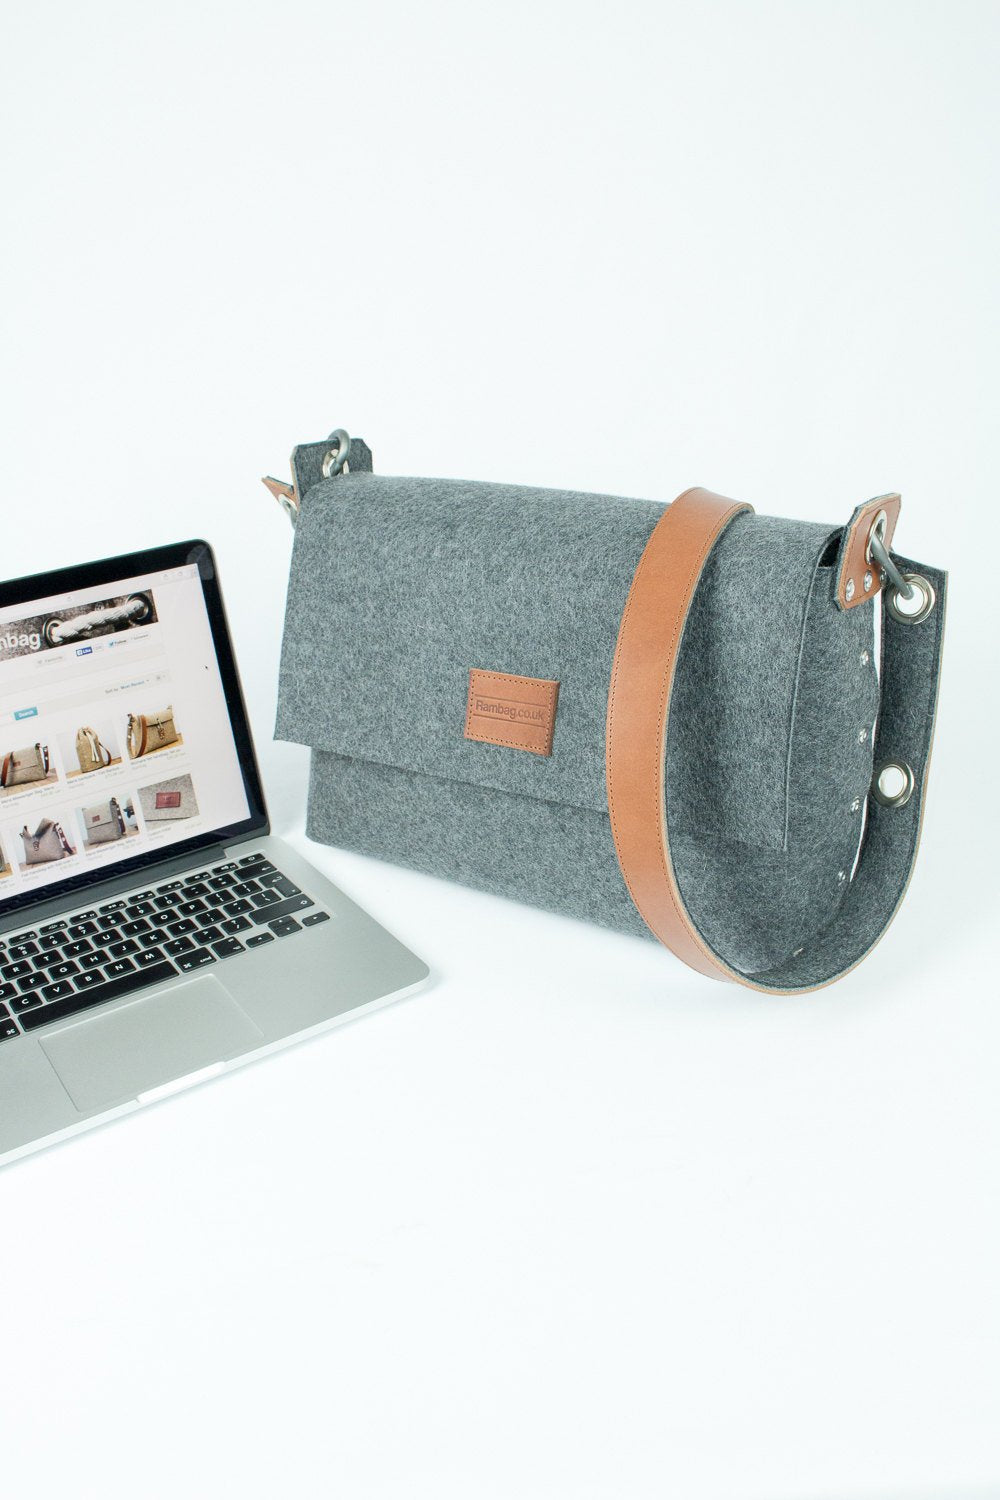 "Laptop Messenger Bag, Laptop Bag, MacBook 13"" Bag"